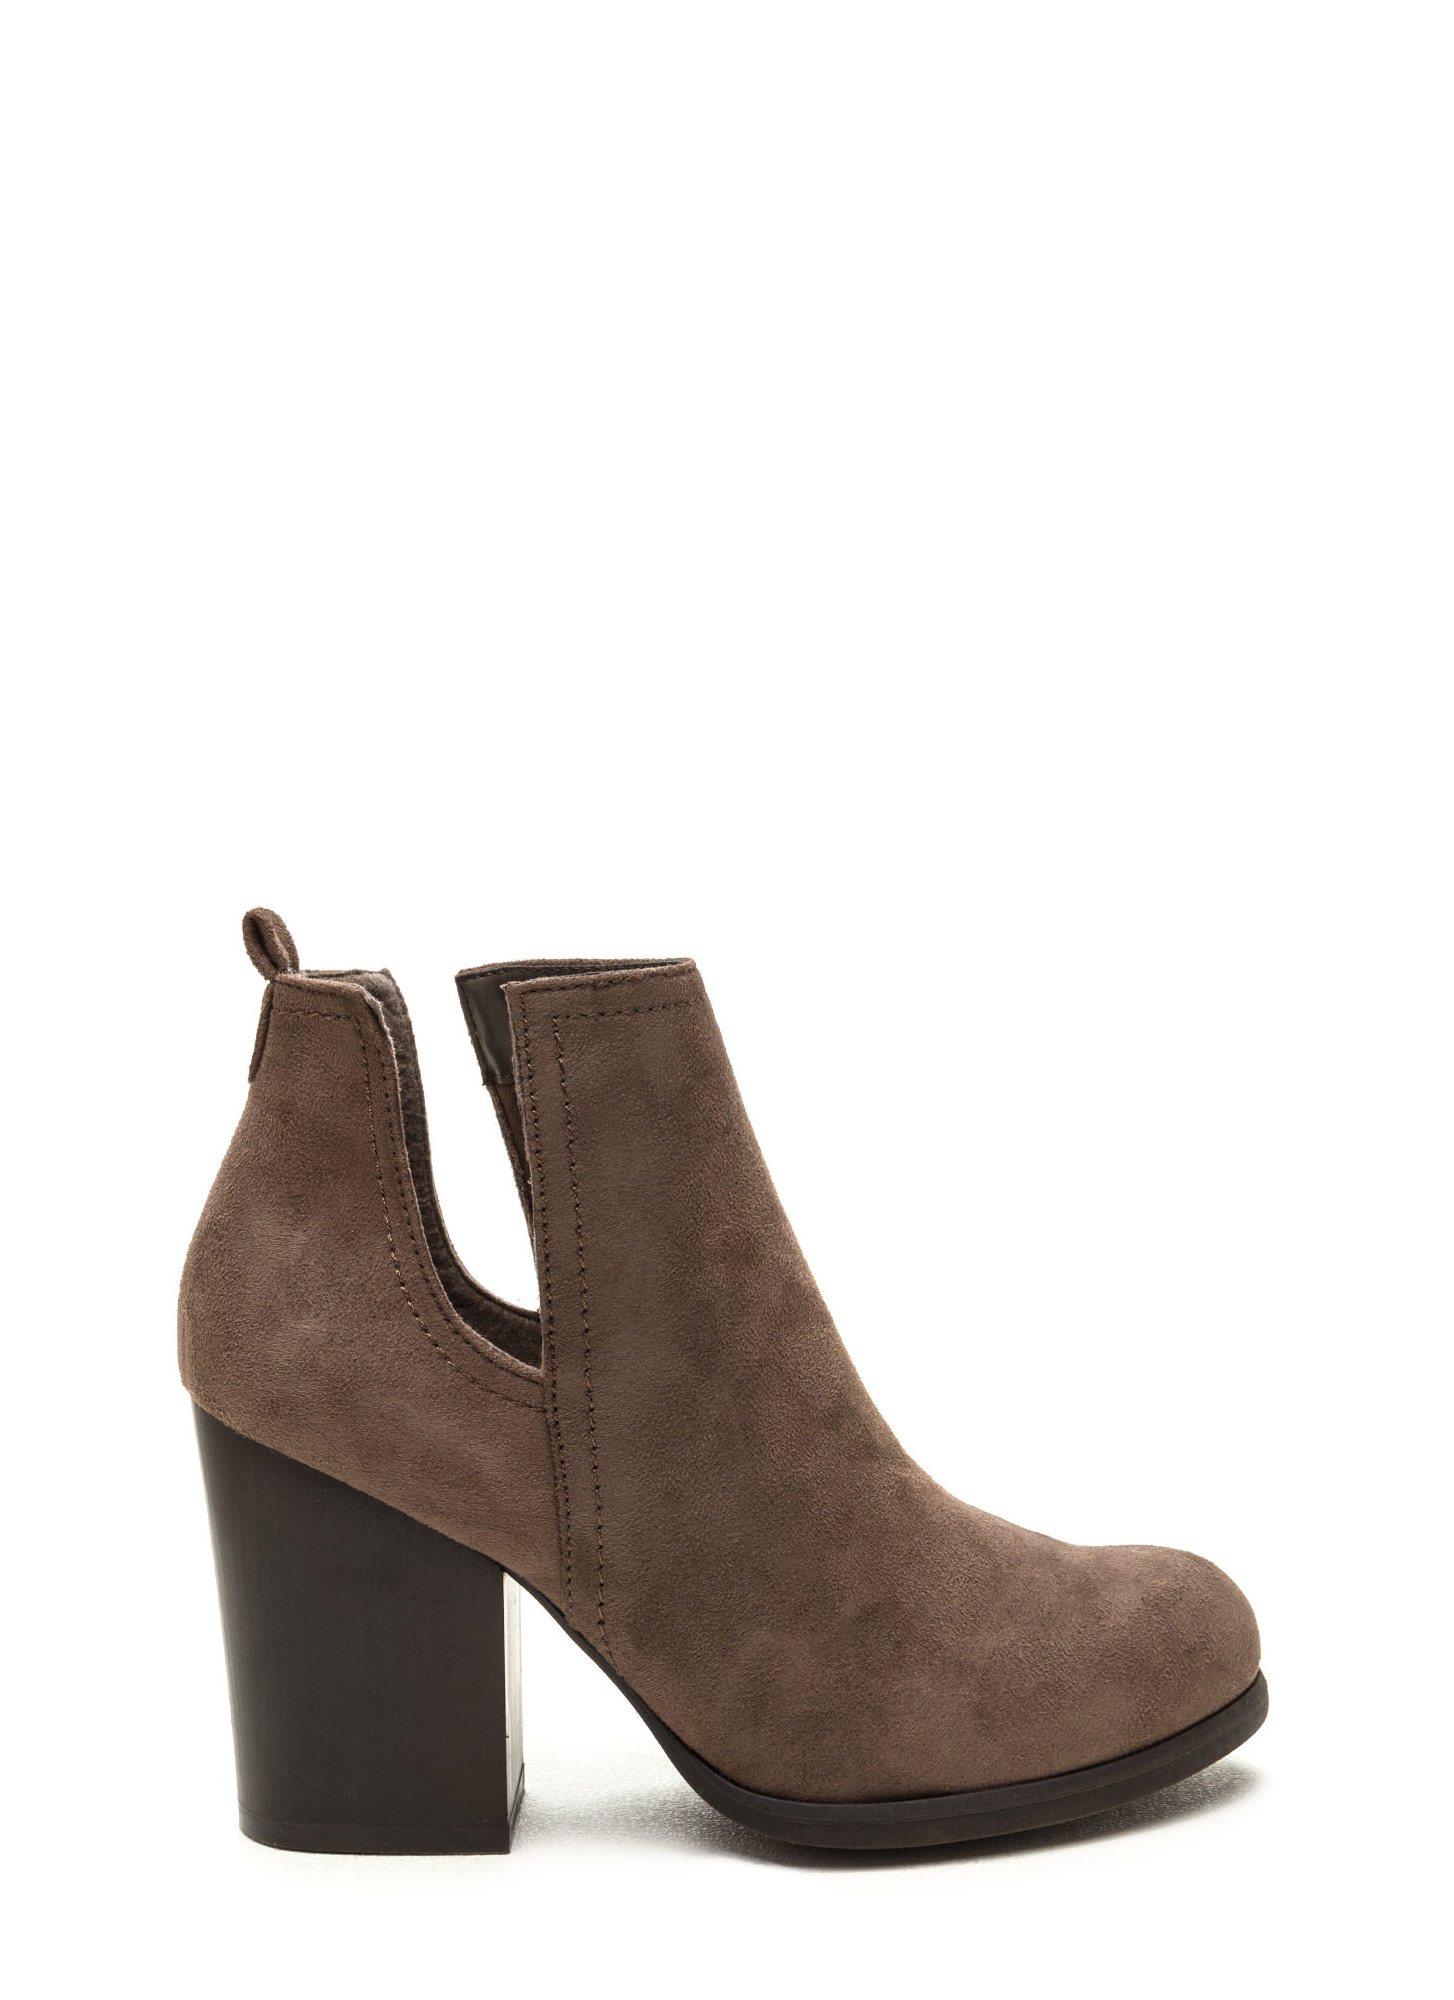 Continental Divide Cut-Out Block Booties TAUPE